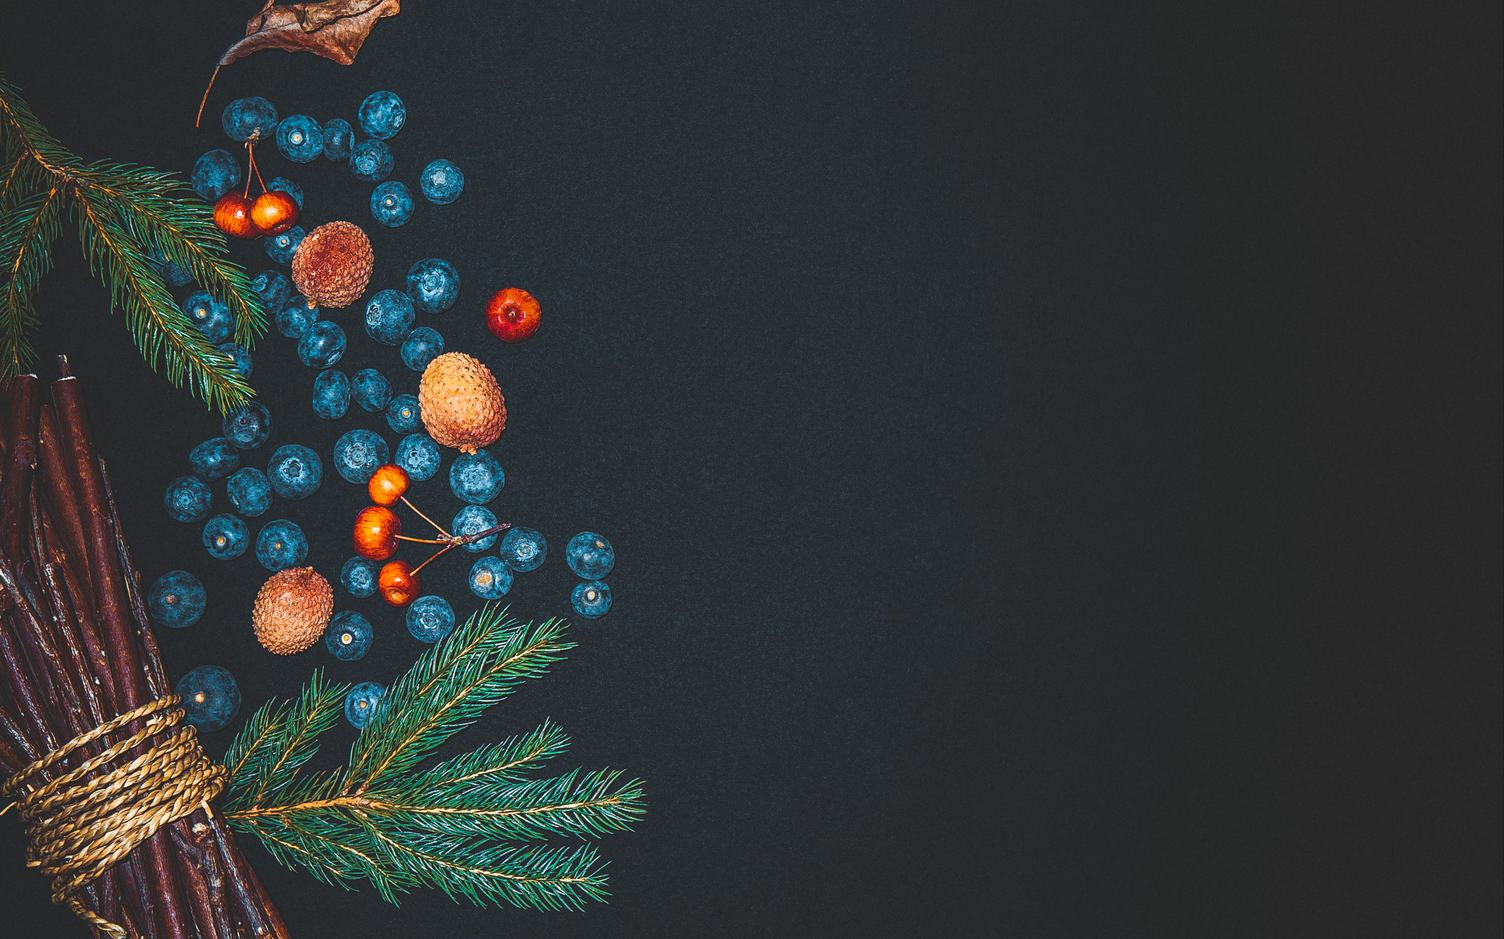 Christmas Composition Branches and Fruits on Black Background